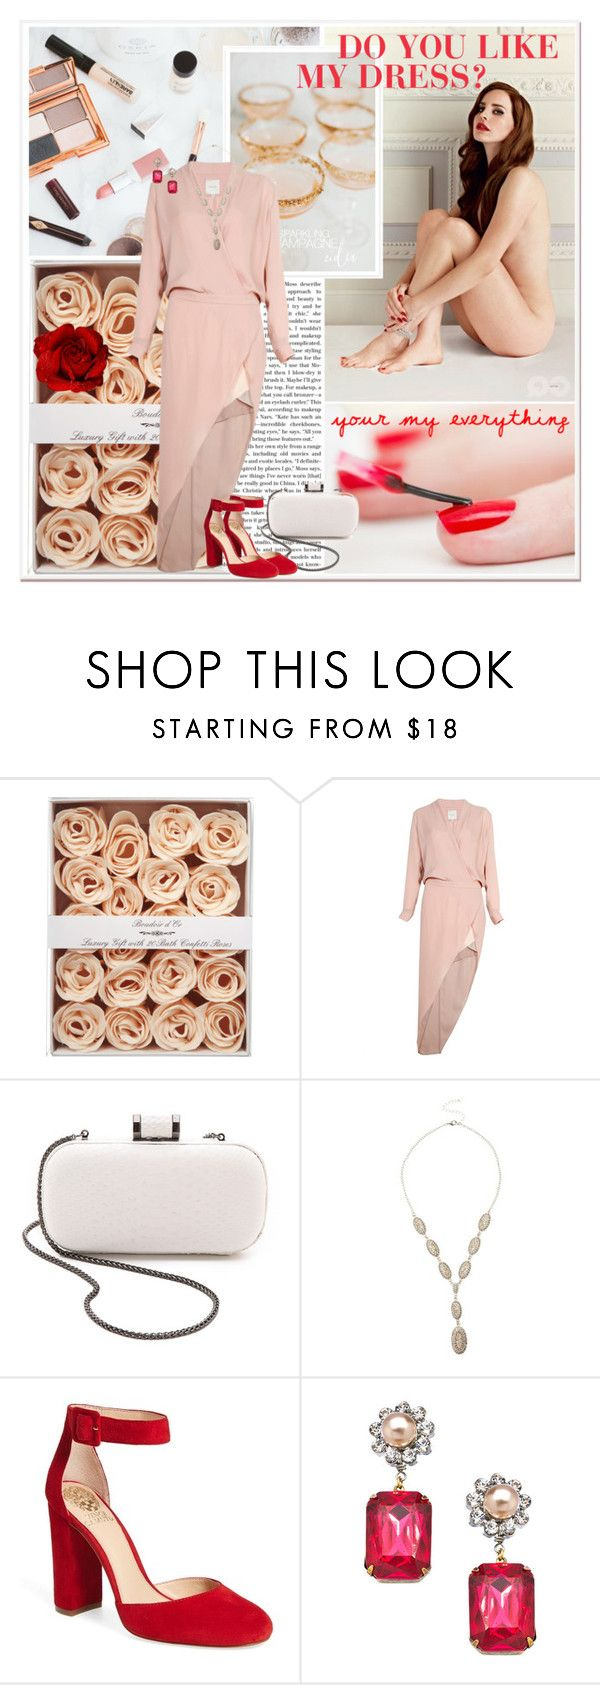 """DO YOU LIKE MY DRESS?"" by gustosa ❤ liked on Polyvore featuring Mason by Michelle Mason, Halston Heritage, Vince Camuto and John Wind"